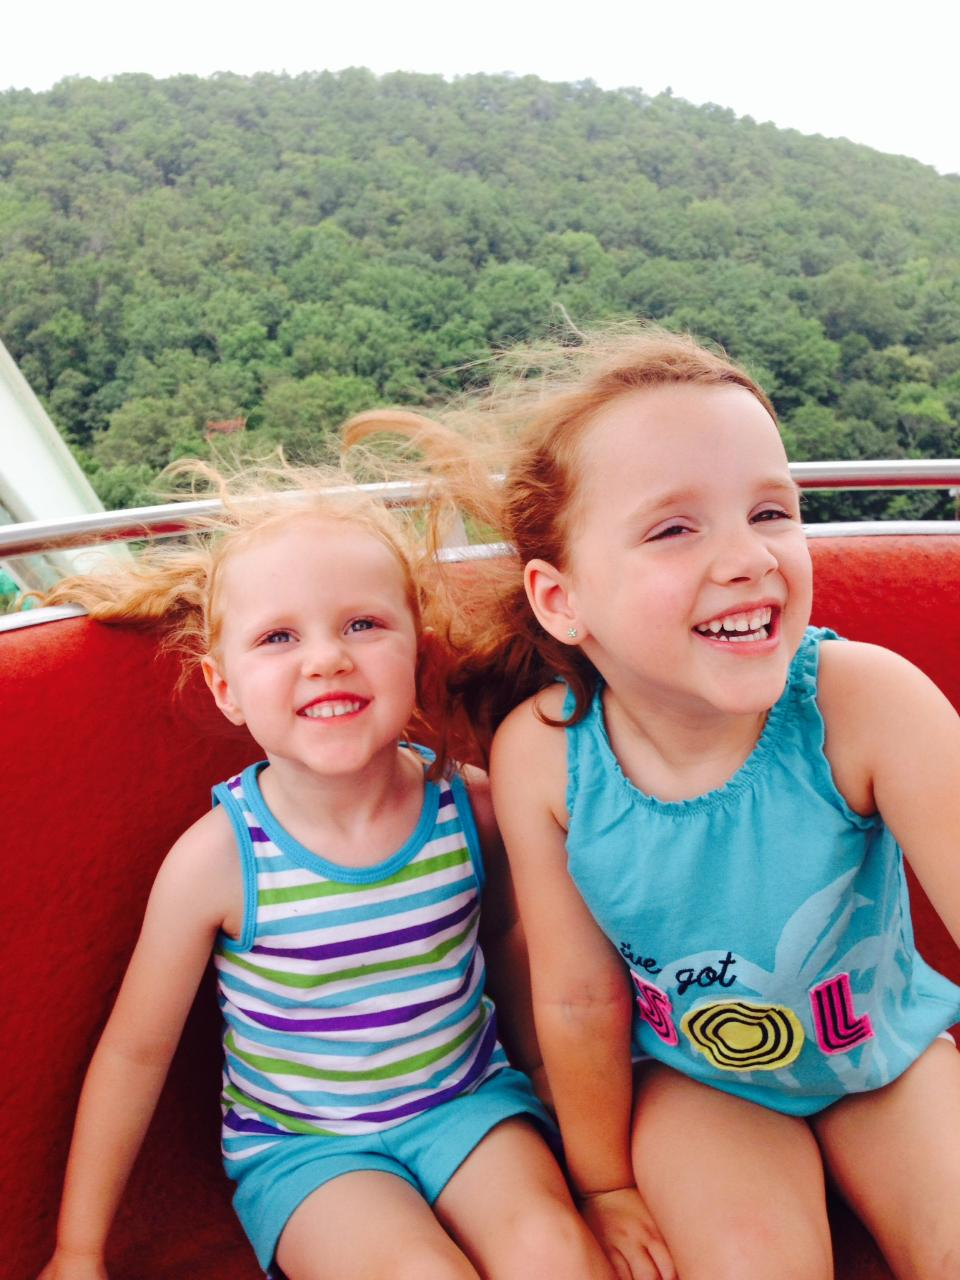 The Bonner girls taking in the scenery on the Ferris Wheel.